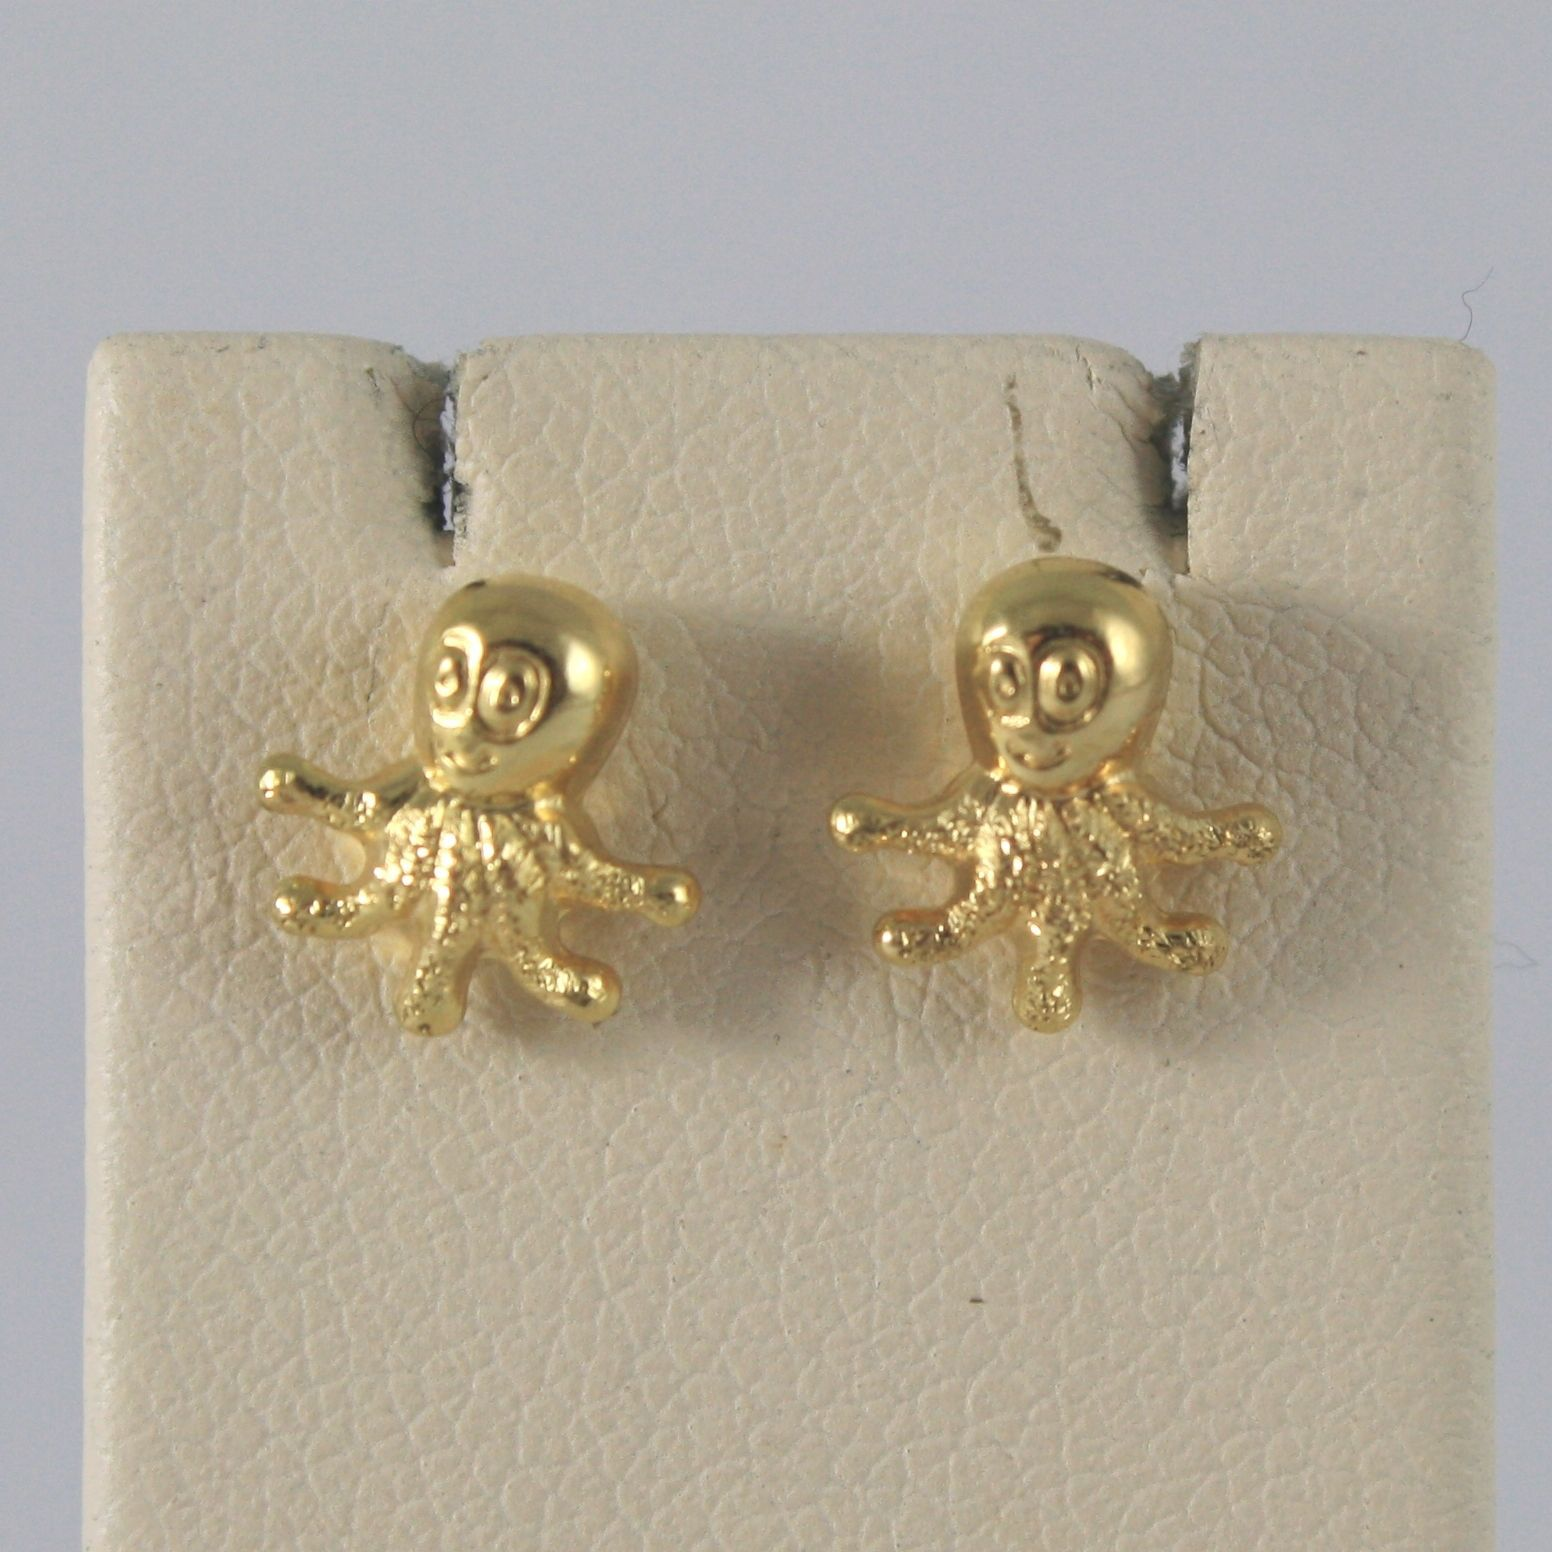 Yellow Gold Earrings 750 18k Stud, Octopus Shaped, polishes and Satin